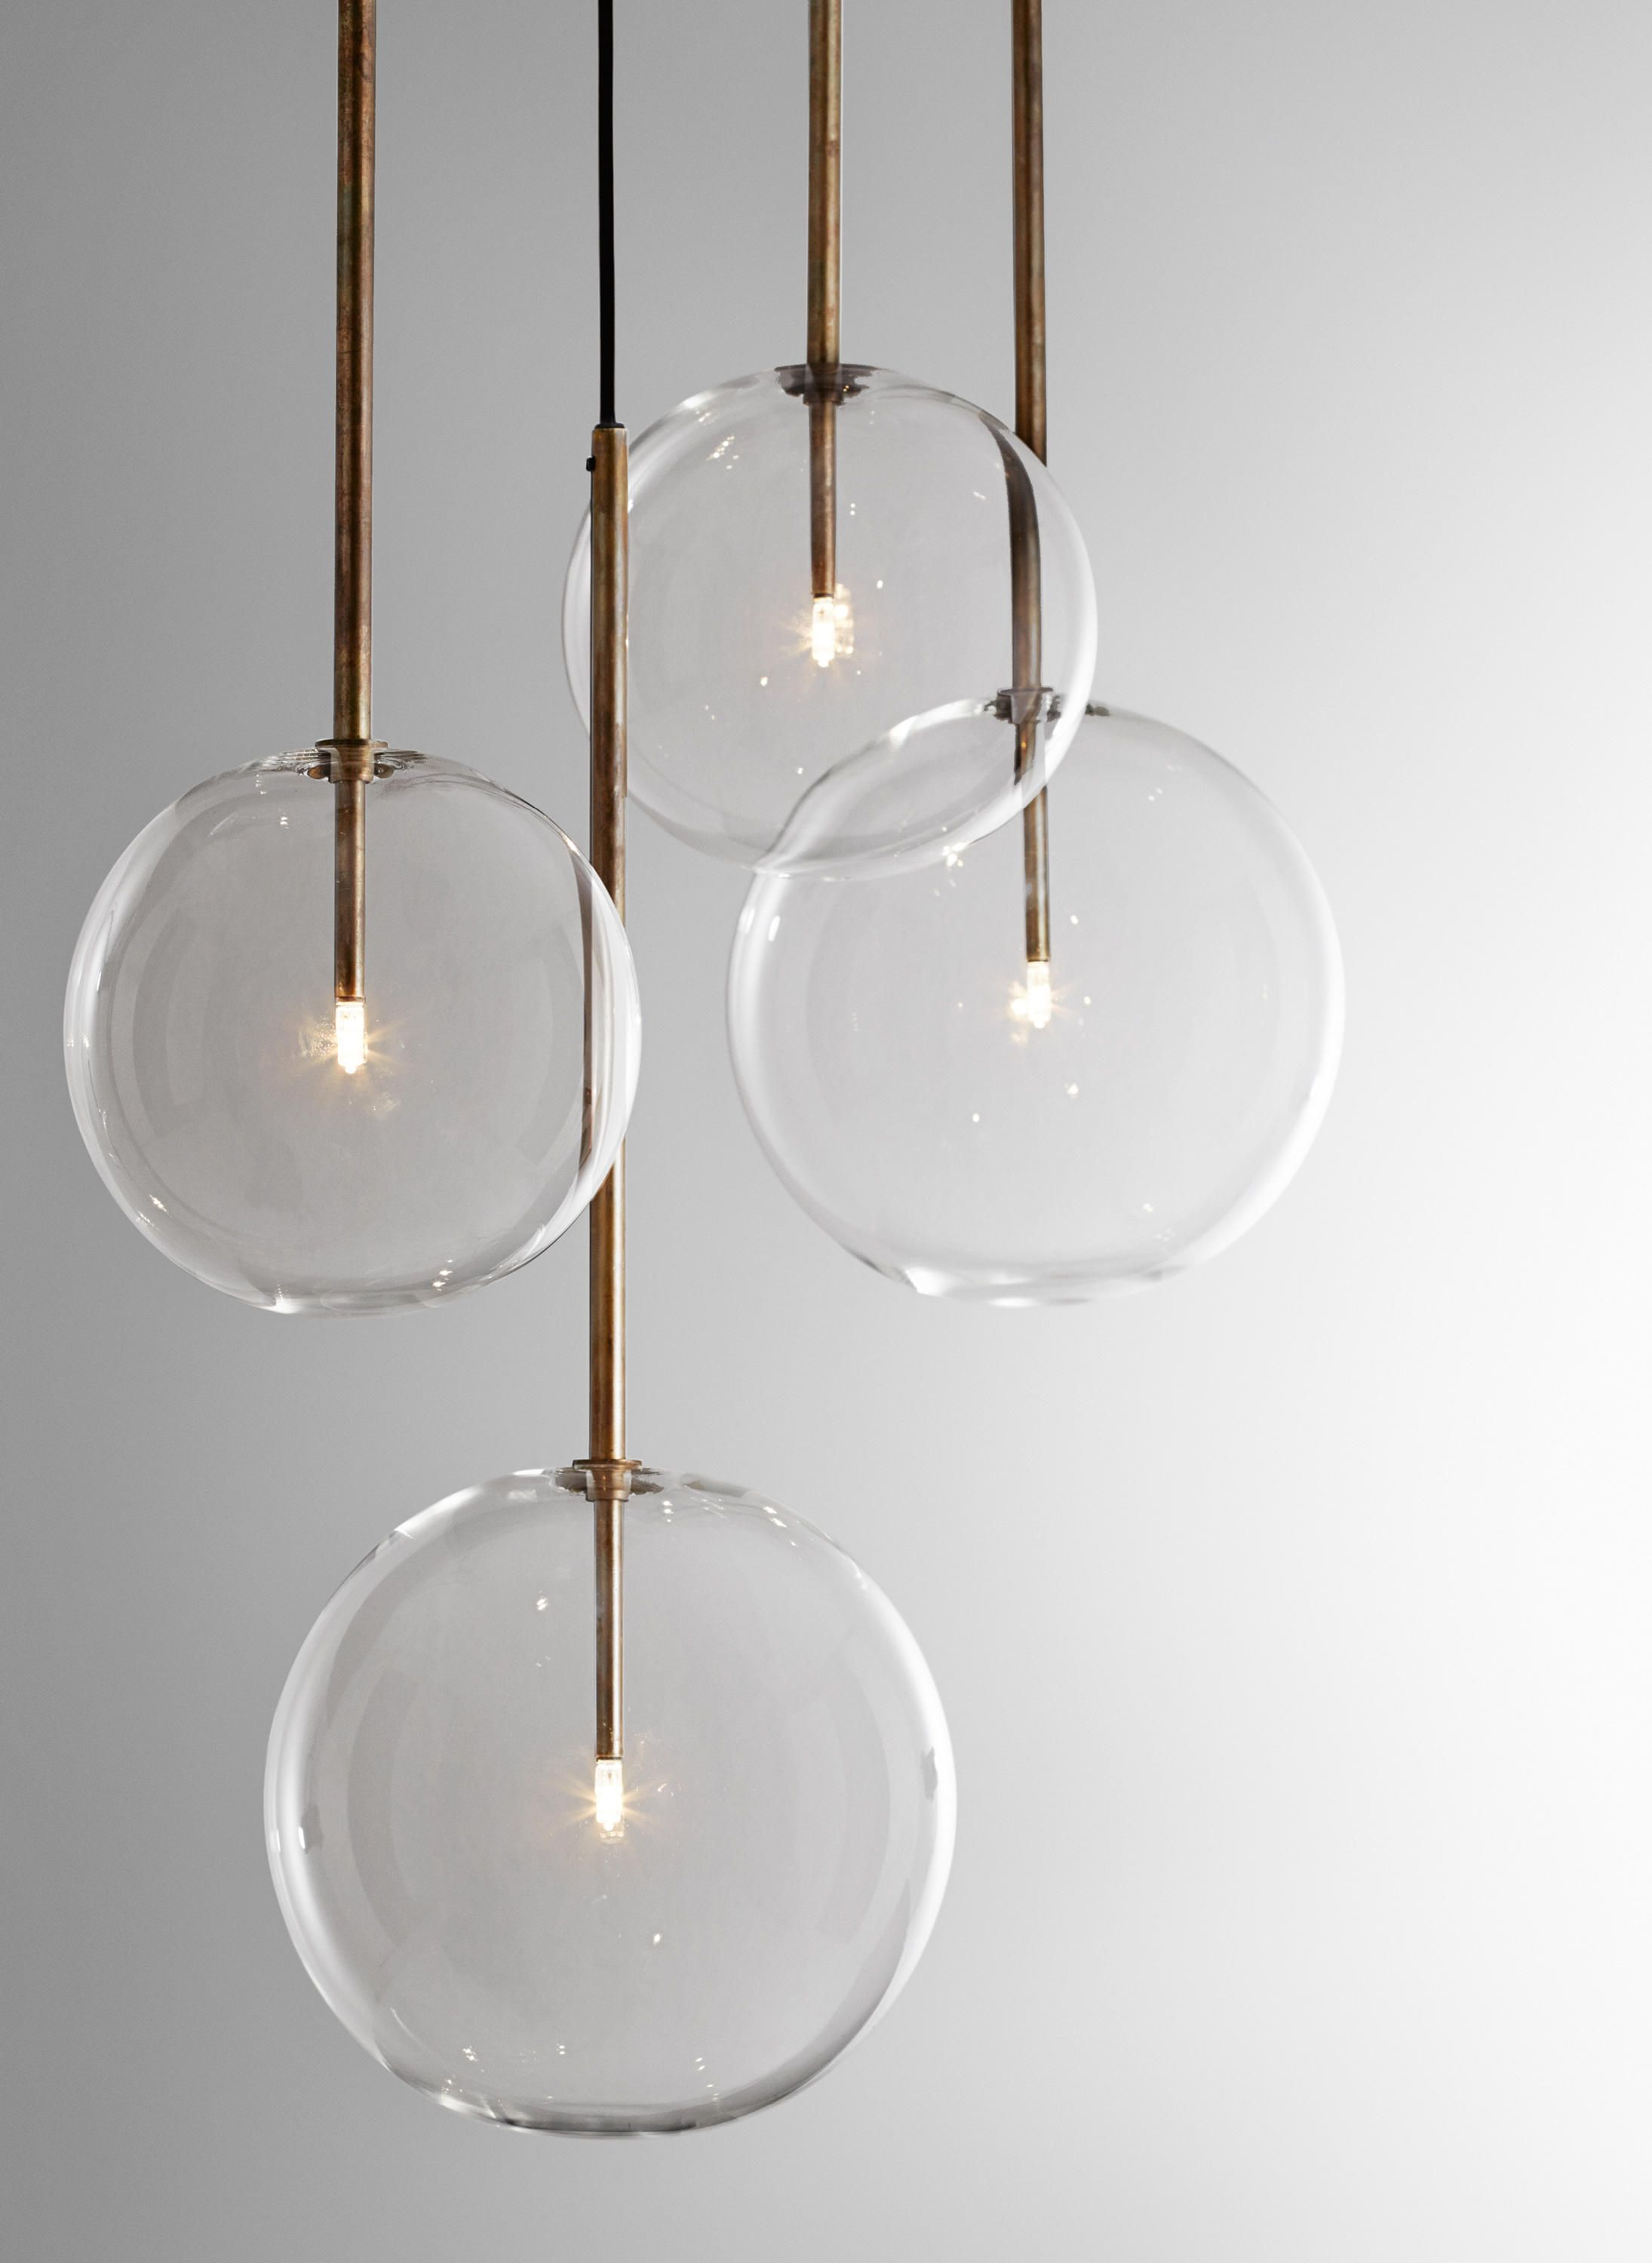 Lampe suspension avec lumi re halog ne ponctuelle 20 for Eclairage suspension design